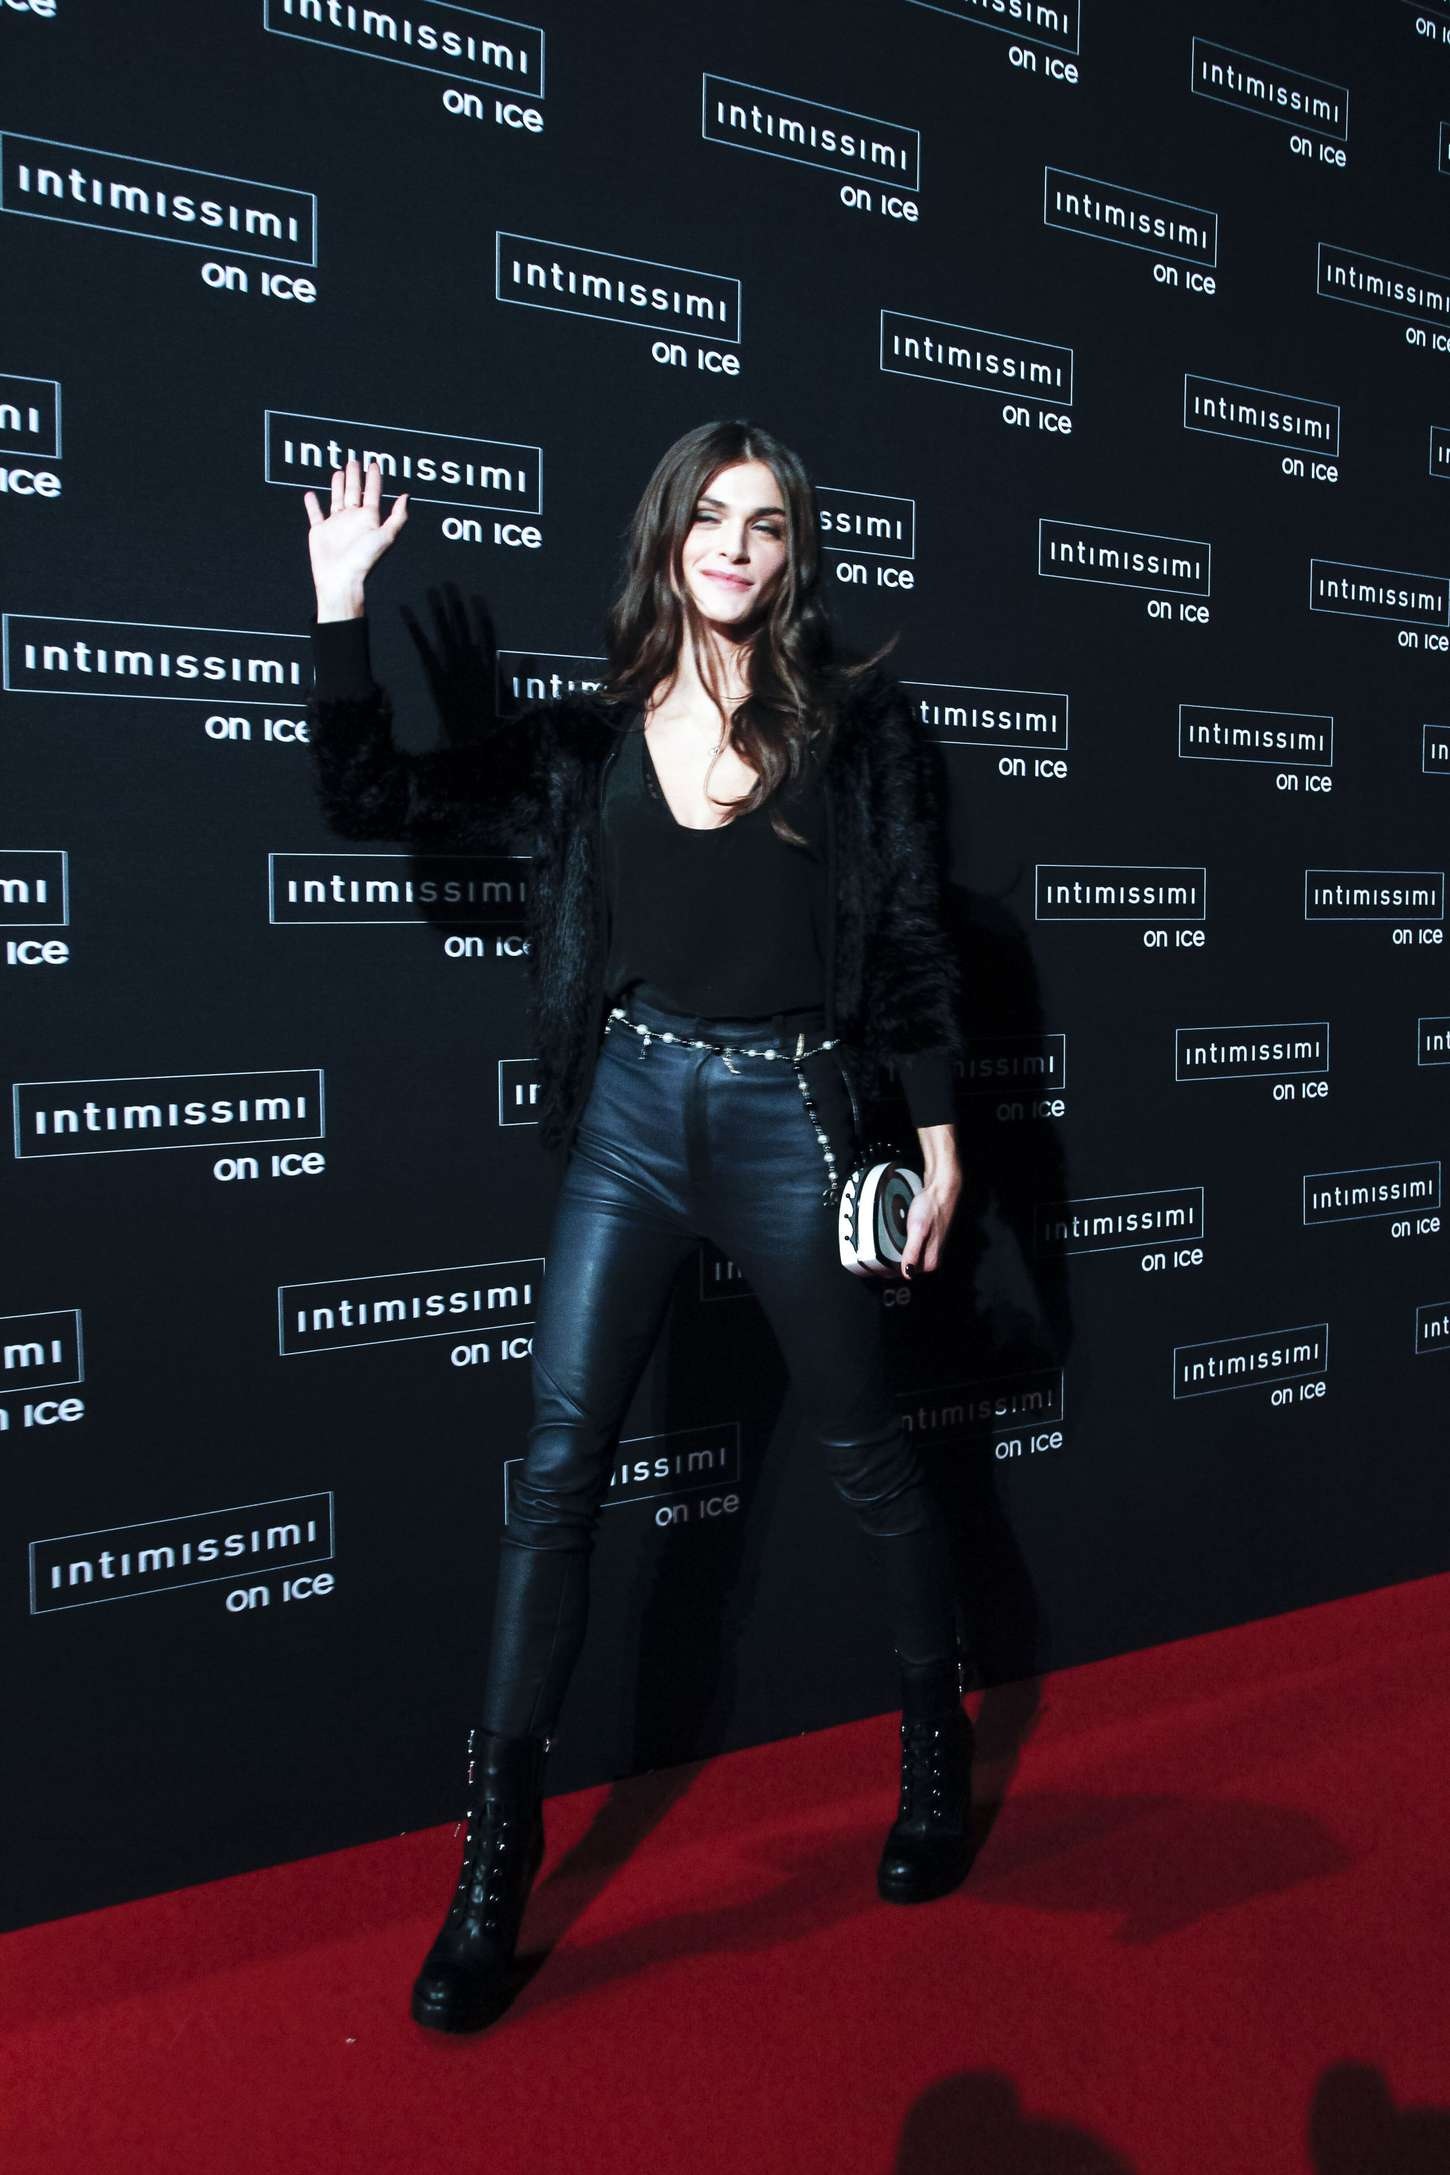 Elisa Sednaoui Intimissimi On Ice in Verona